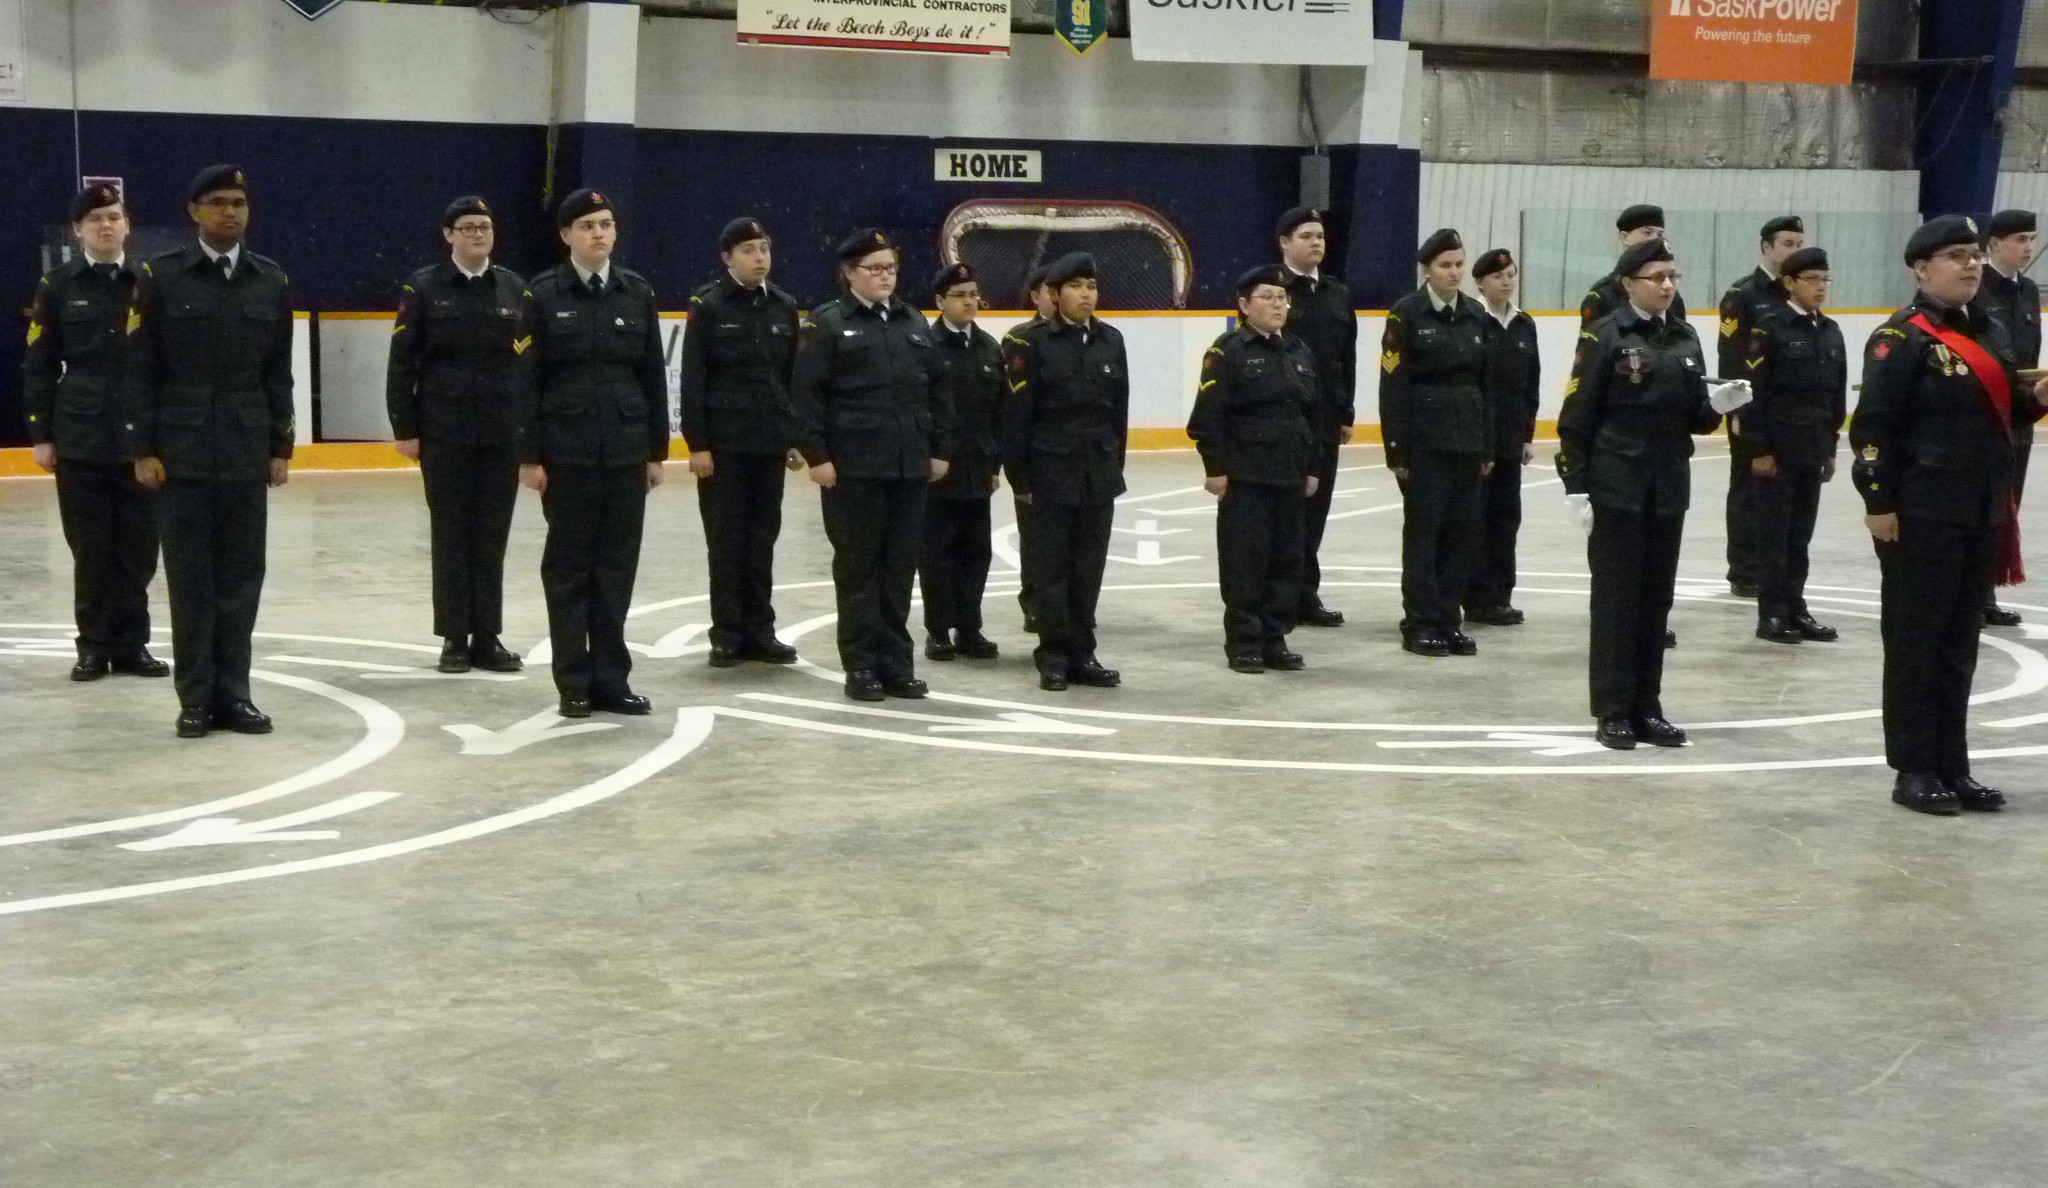 Flin Flon Army Cadets are Accepting Applications for Another